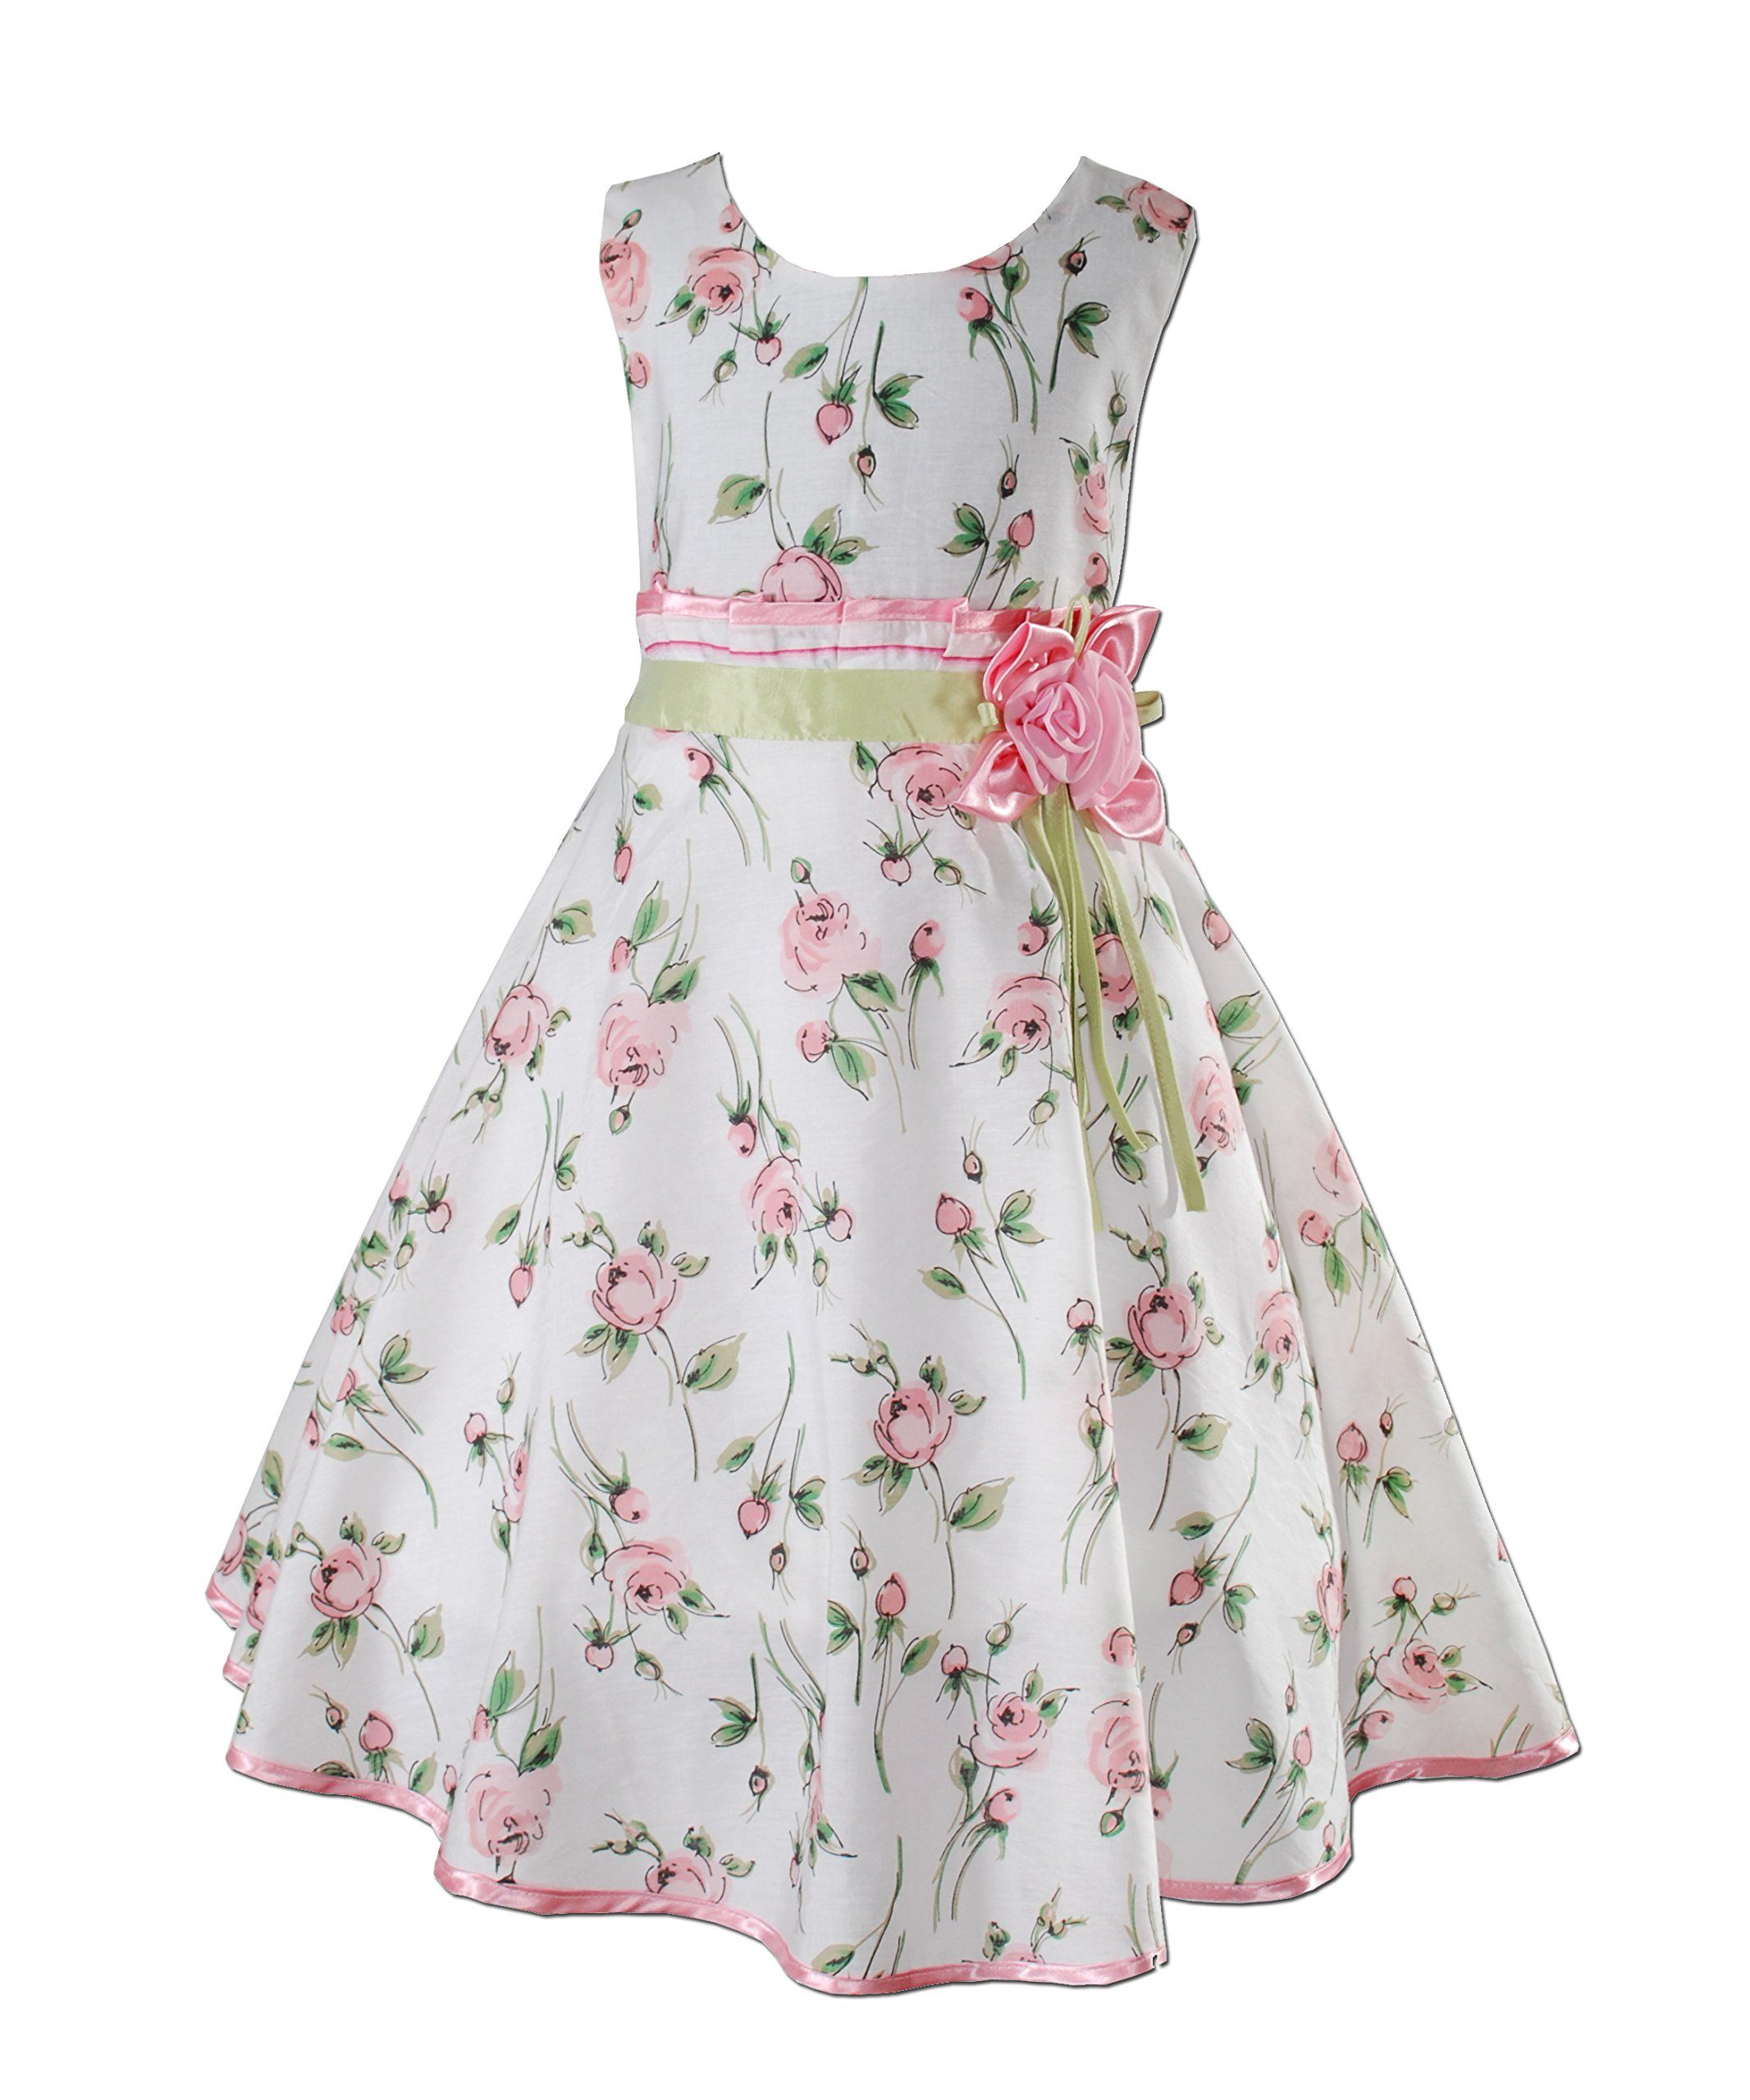 Cinda Girls White Pink and Red Flower Party Dress 4 5 6 7 8 Years